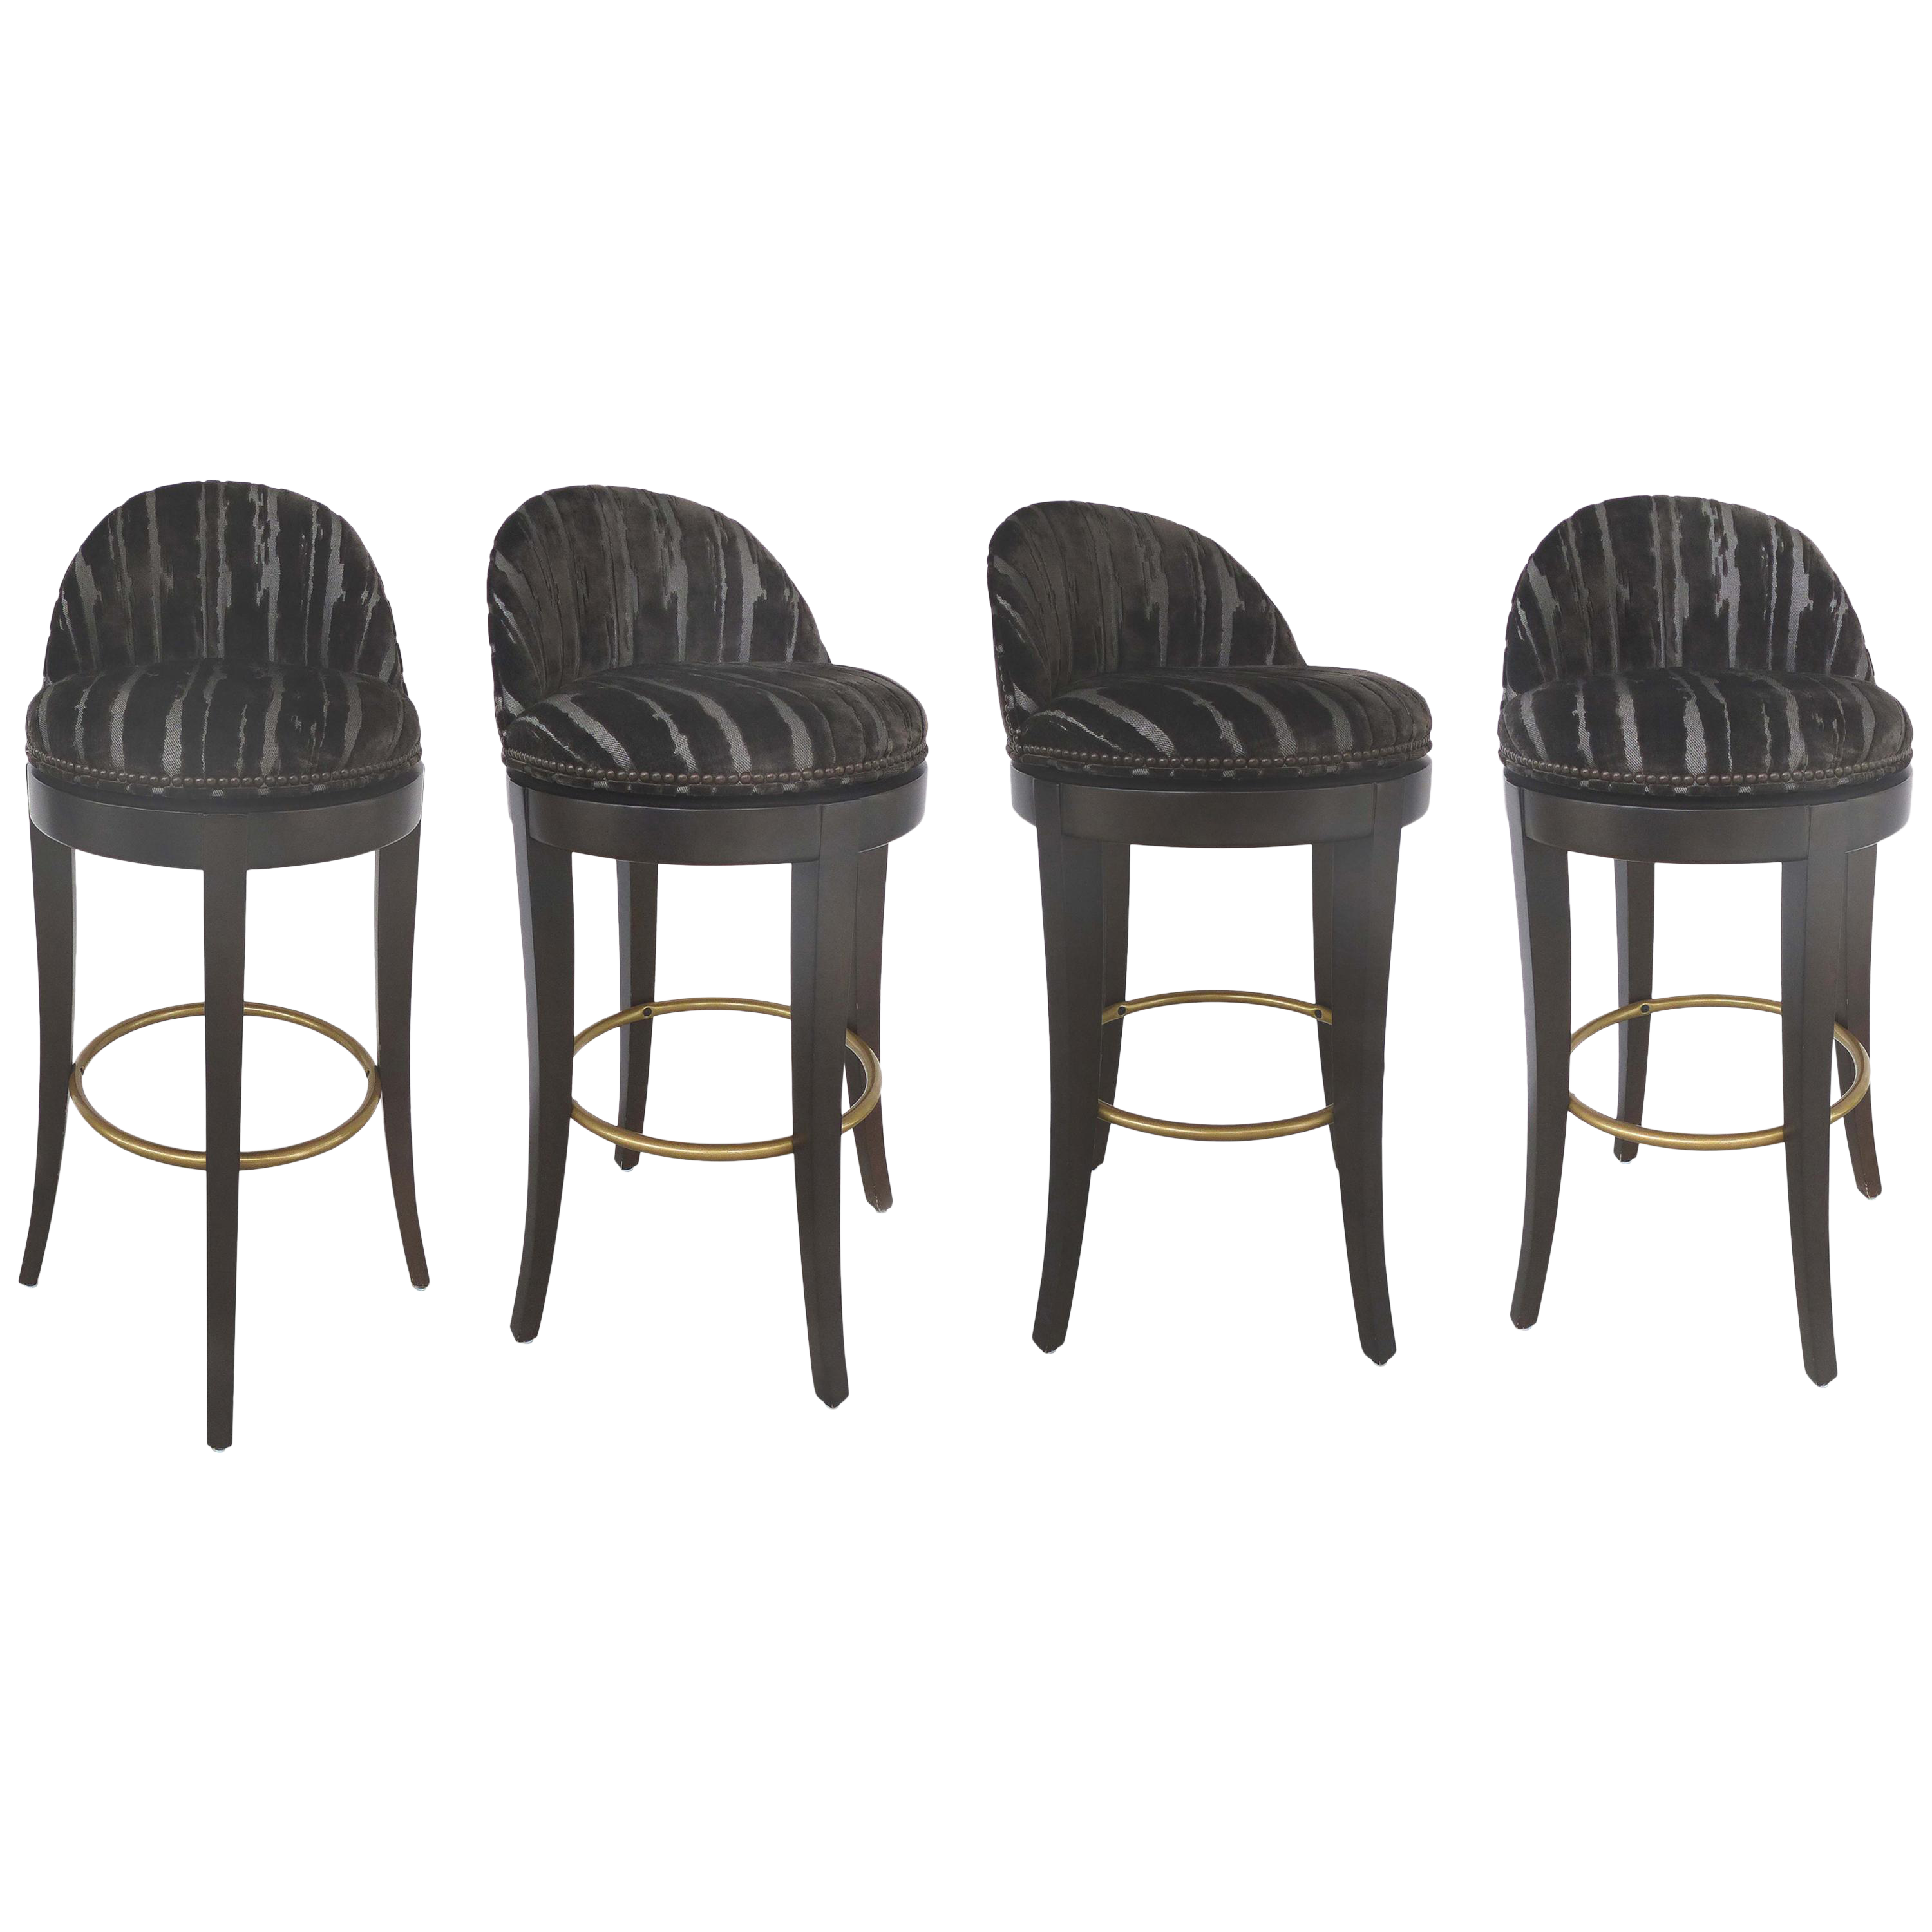 Swell Tibet Swivel Bar Stools By Kravet Furniture 4 Available Ocoug Best Dining Table And Chair Ideas Images Ocougorg